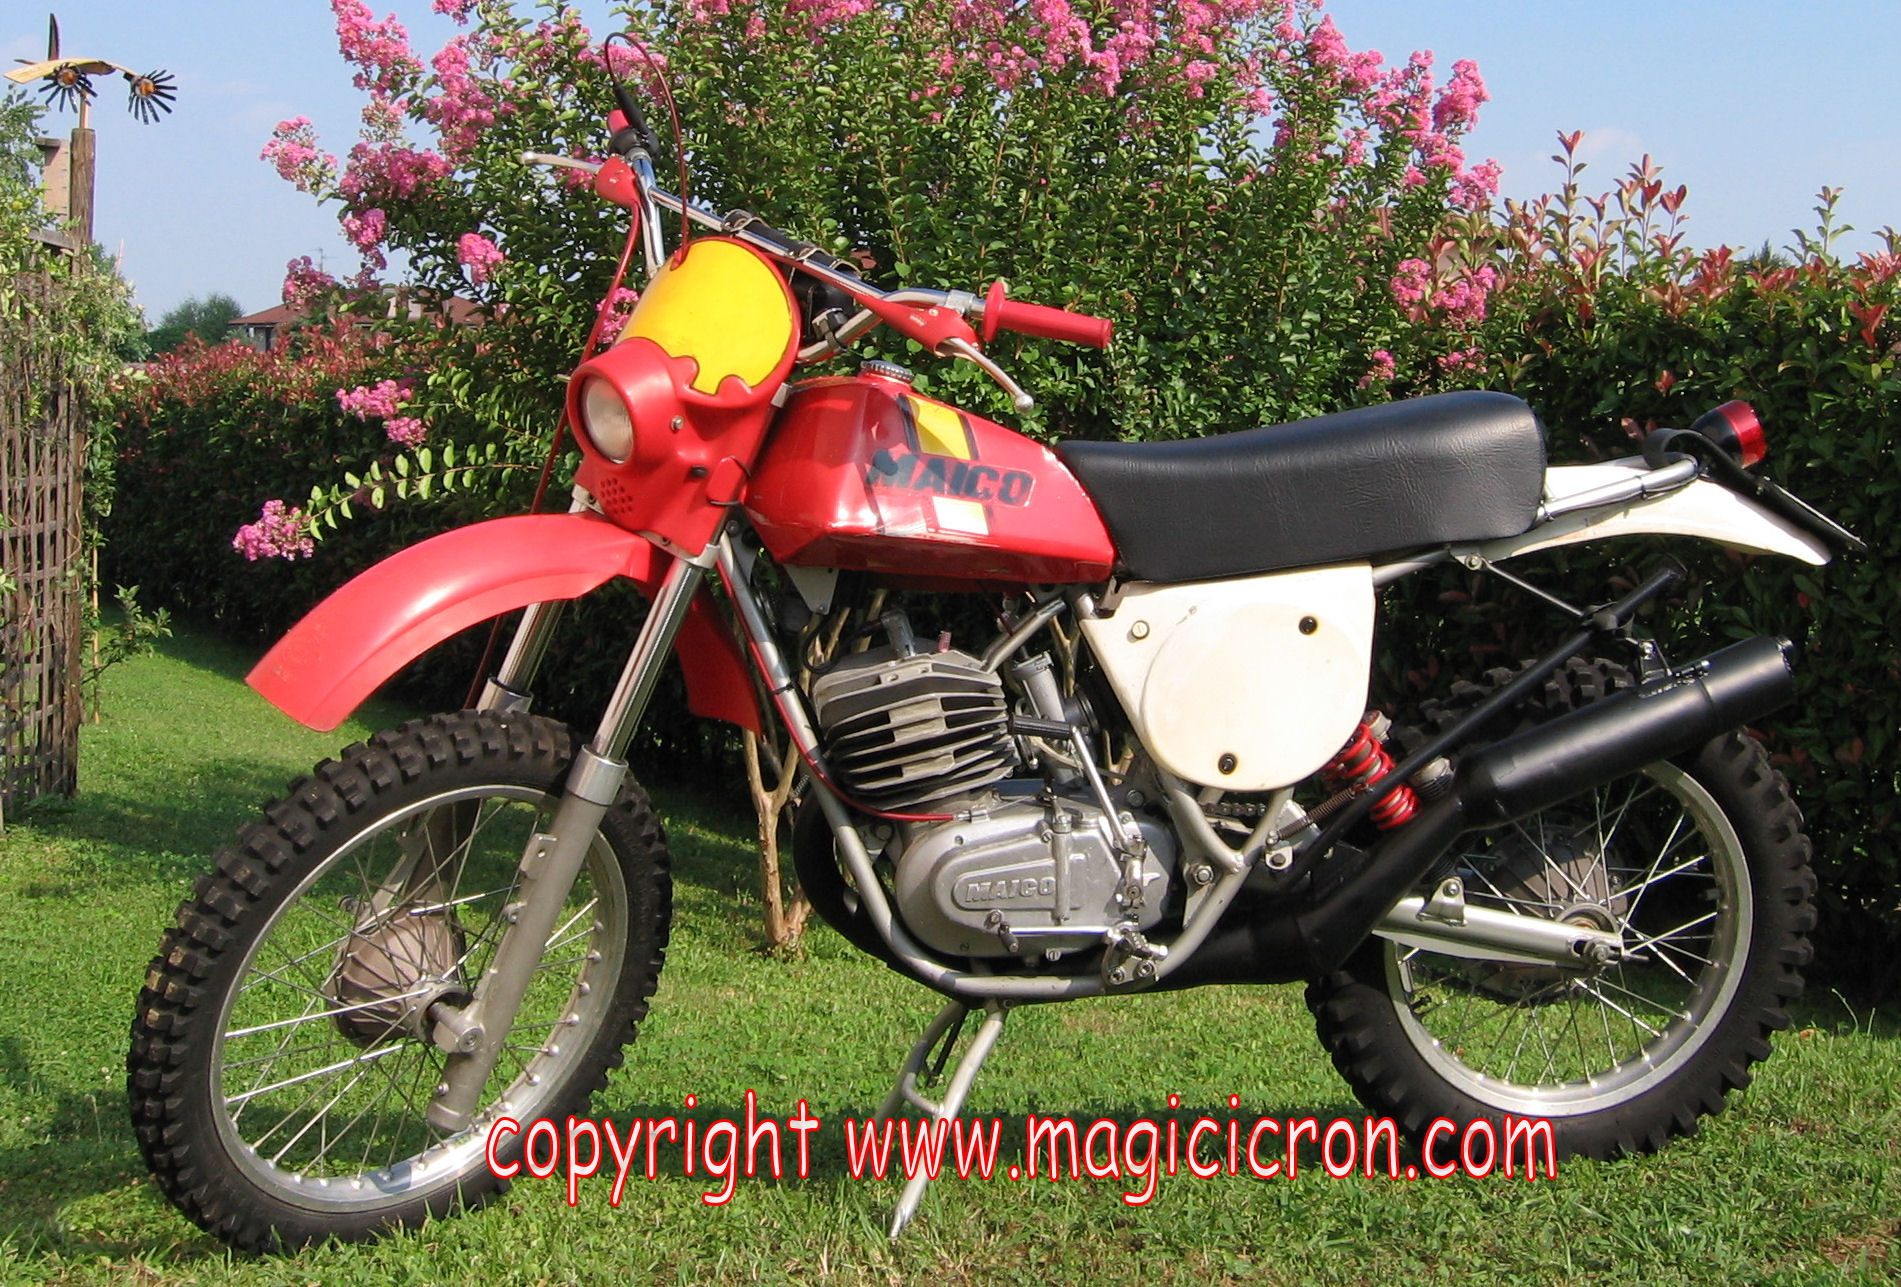 Maico MD 125/6 1975 images #101928